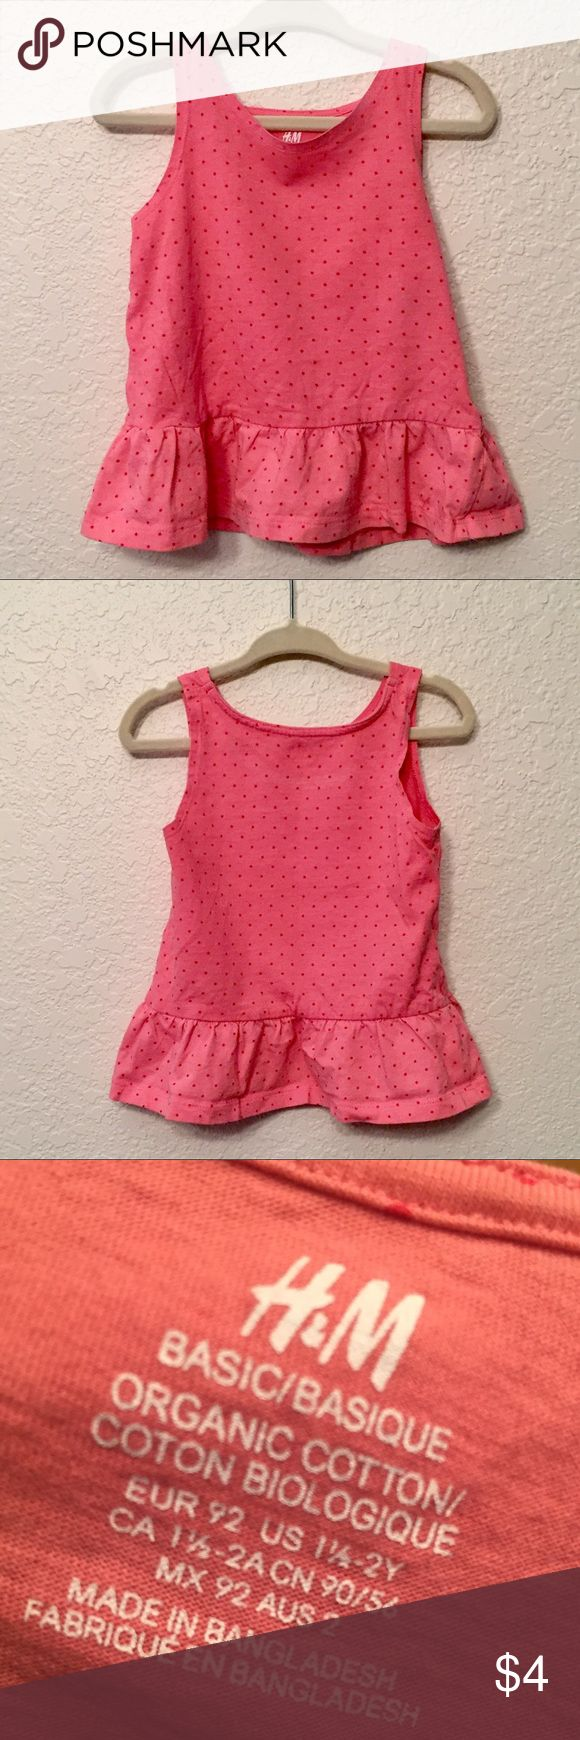 Toddler Girl Pink Peplum Top Cleaning out the daughter's closet. This H&M top is so darling and, while it has been washed and worn, it has maintained perfect condition. It's 100% cotton and did not shrink or warp at all with regular care. H&M Shirts & Tops Tank Tops